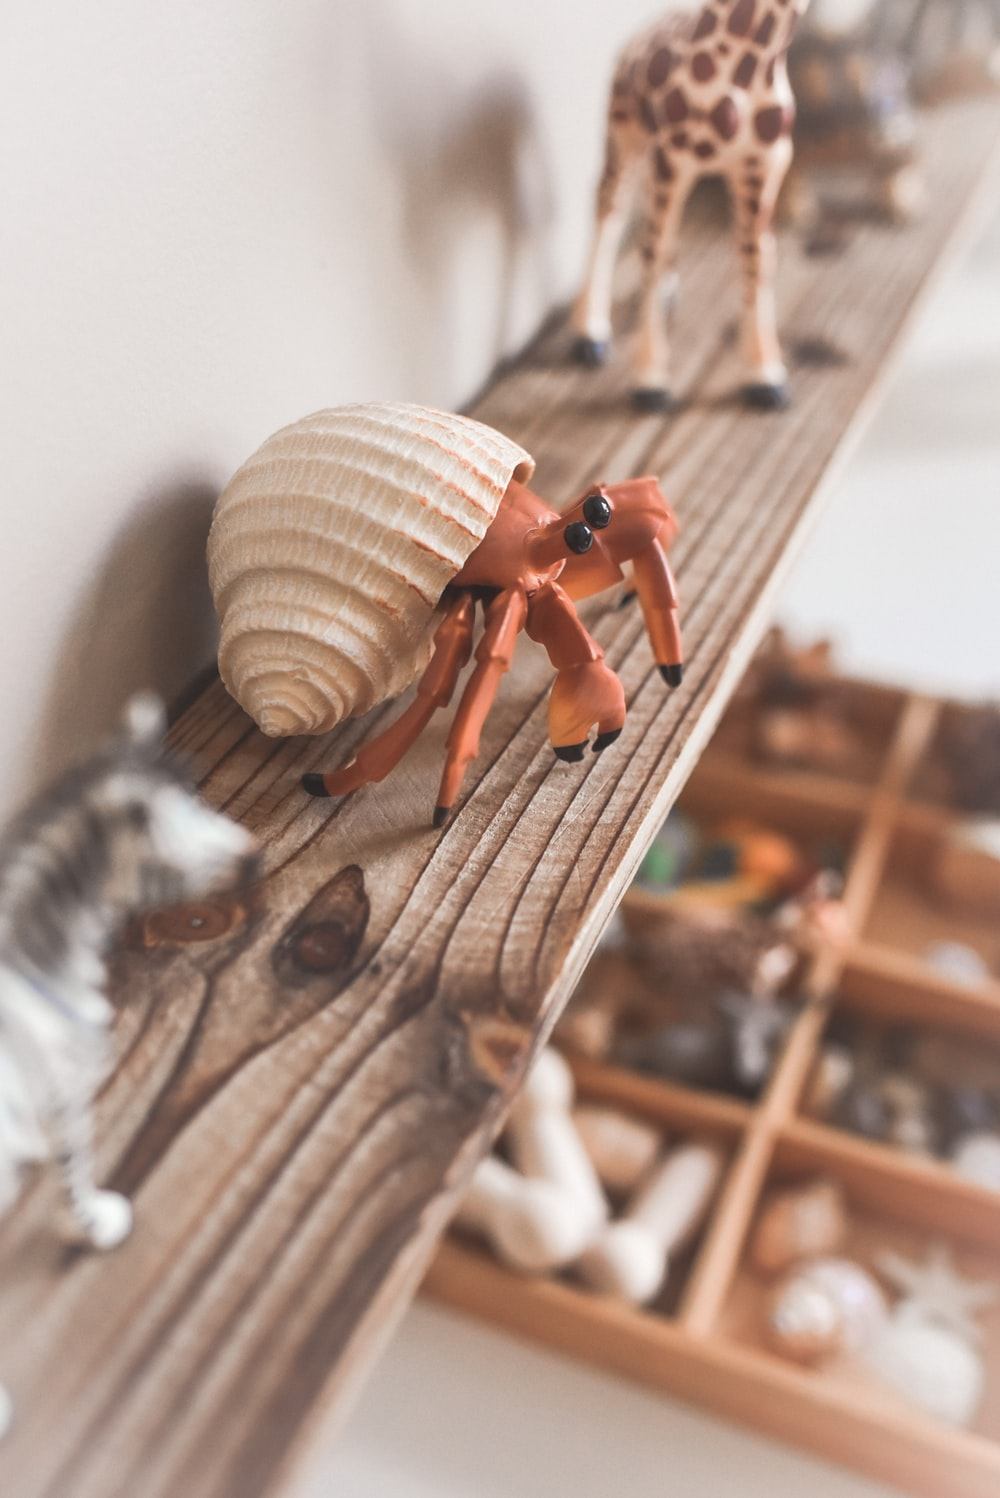 brown and white snail on brown wooden surface